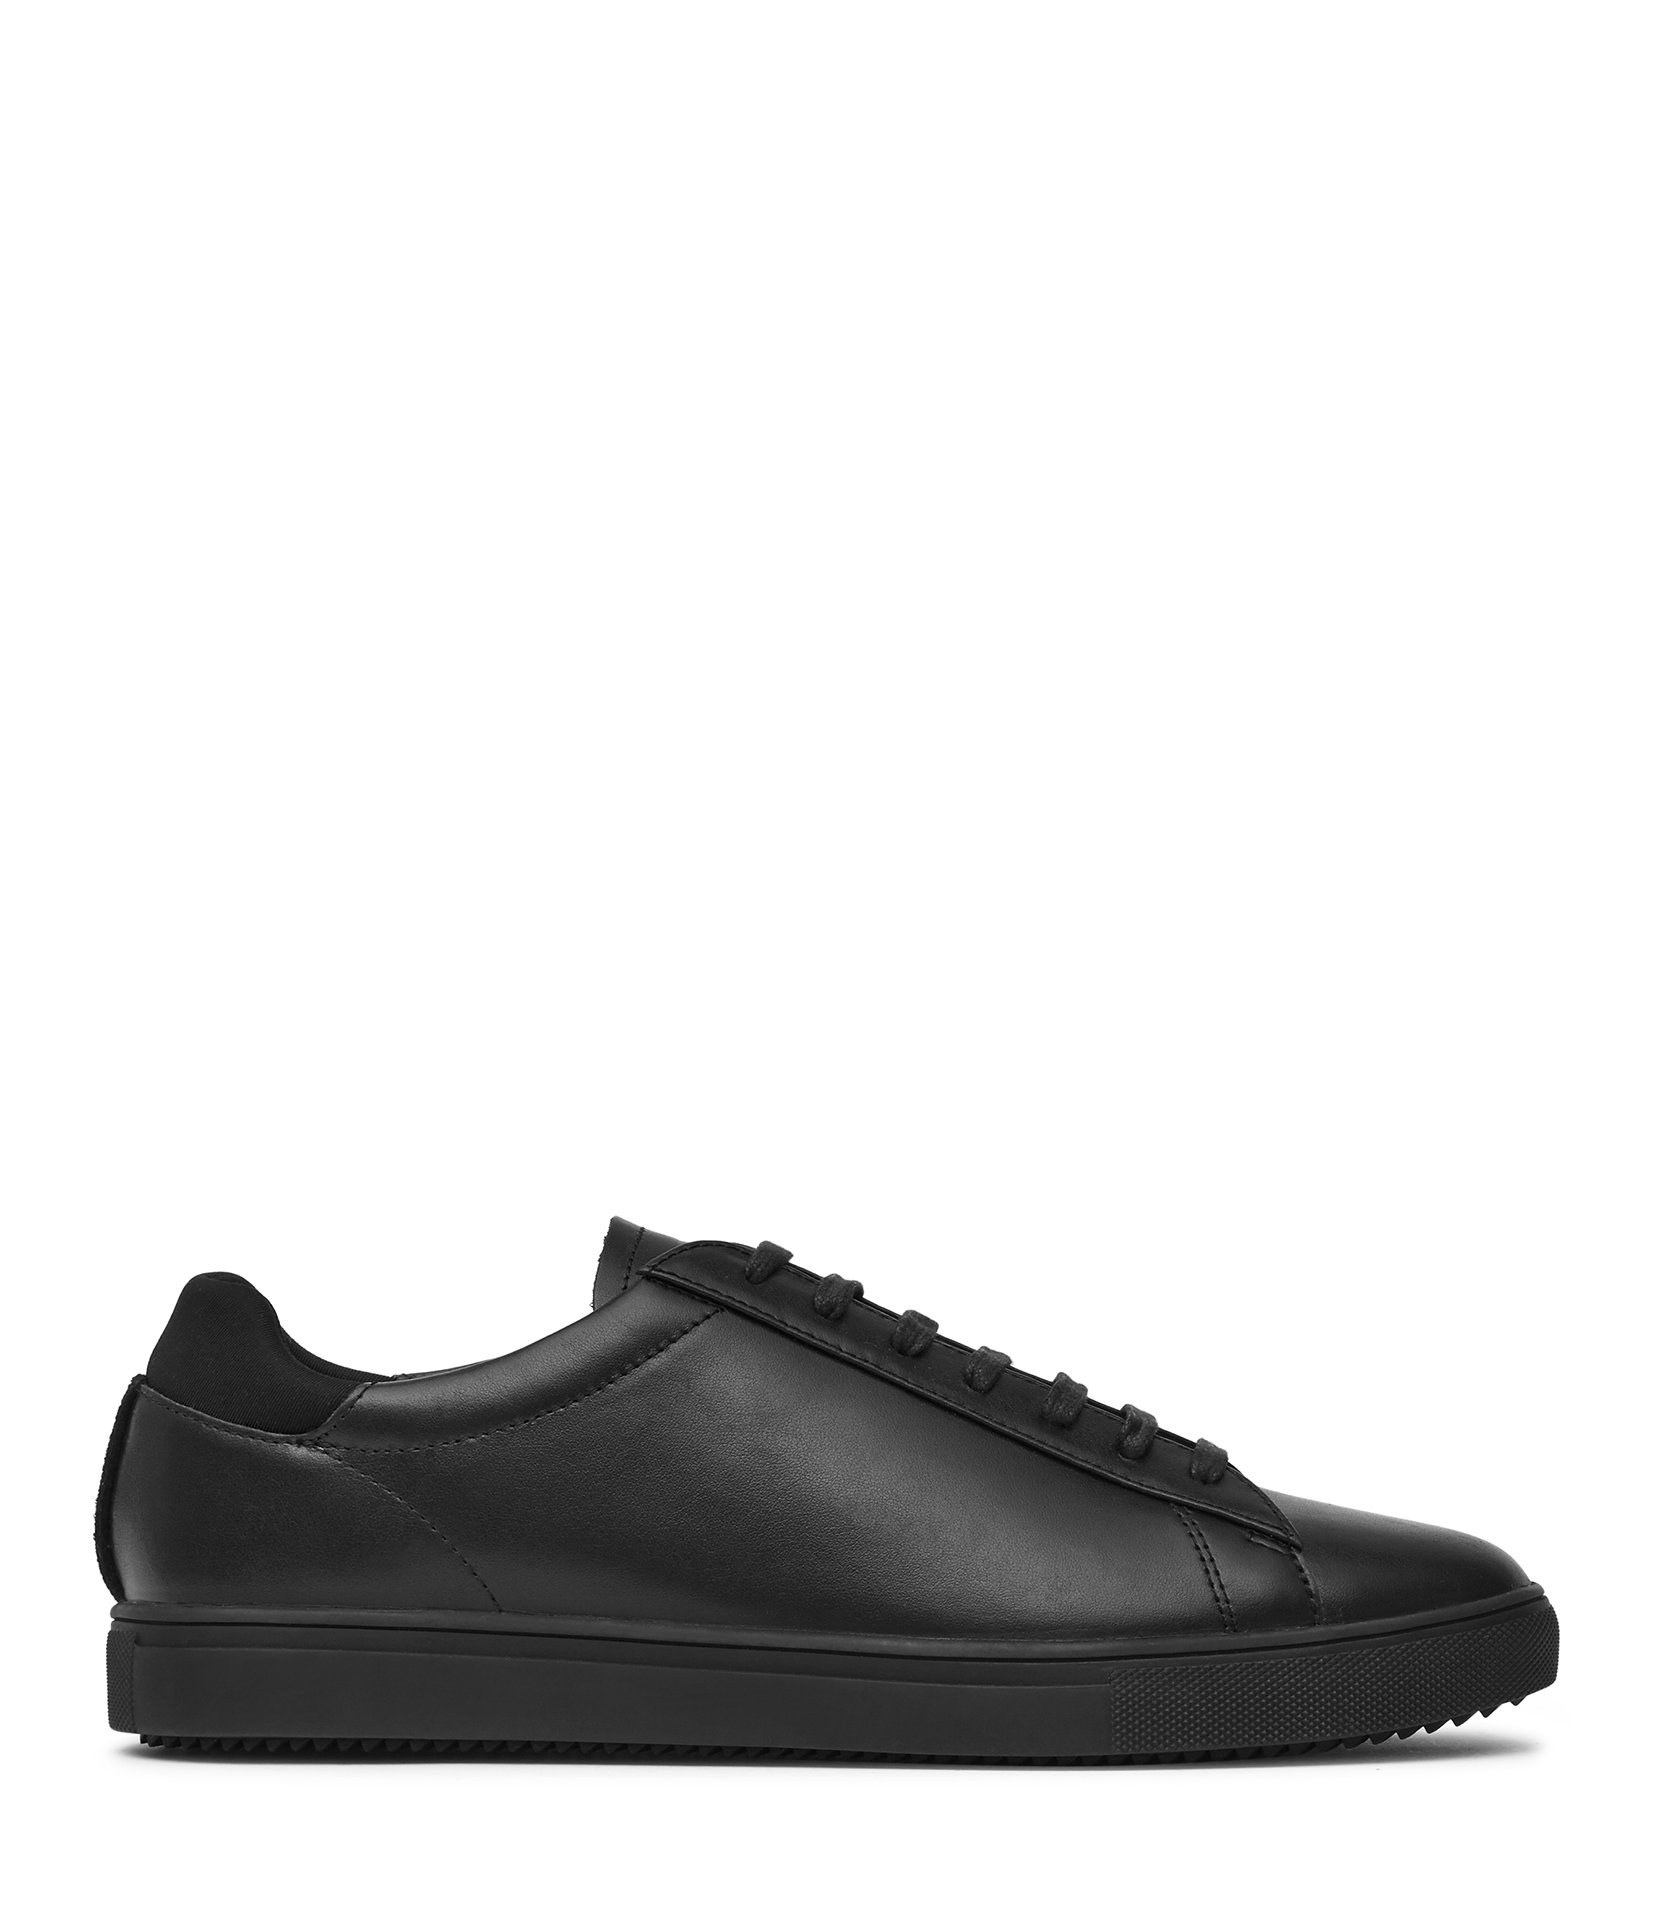 Reiss Black Clae Leather Sneakers